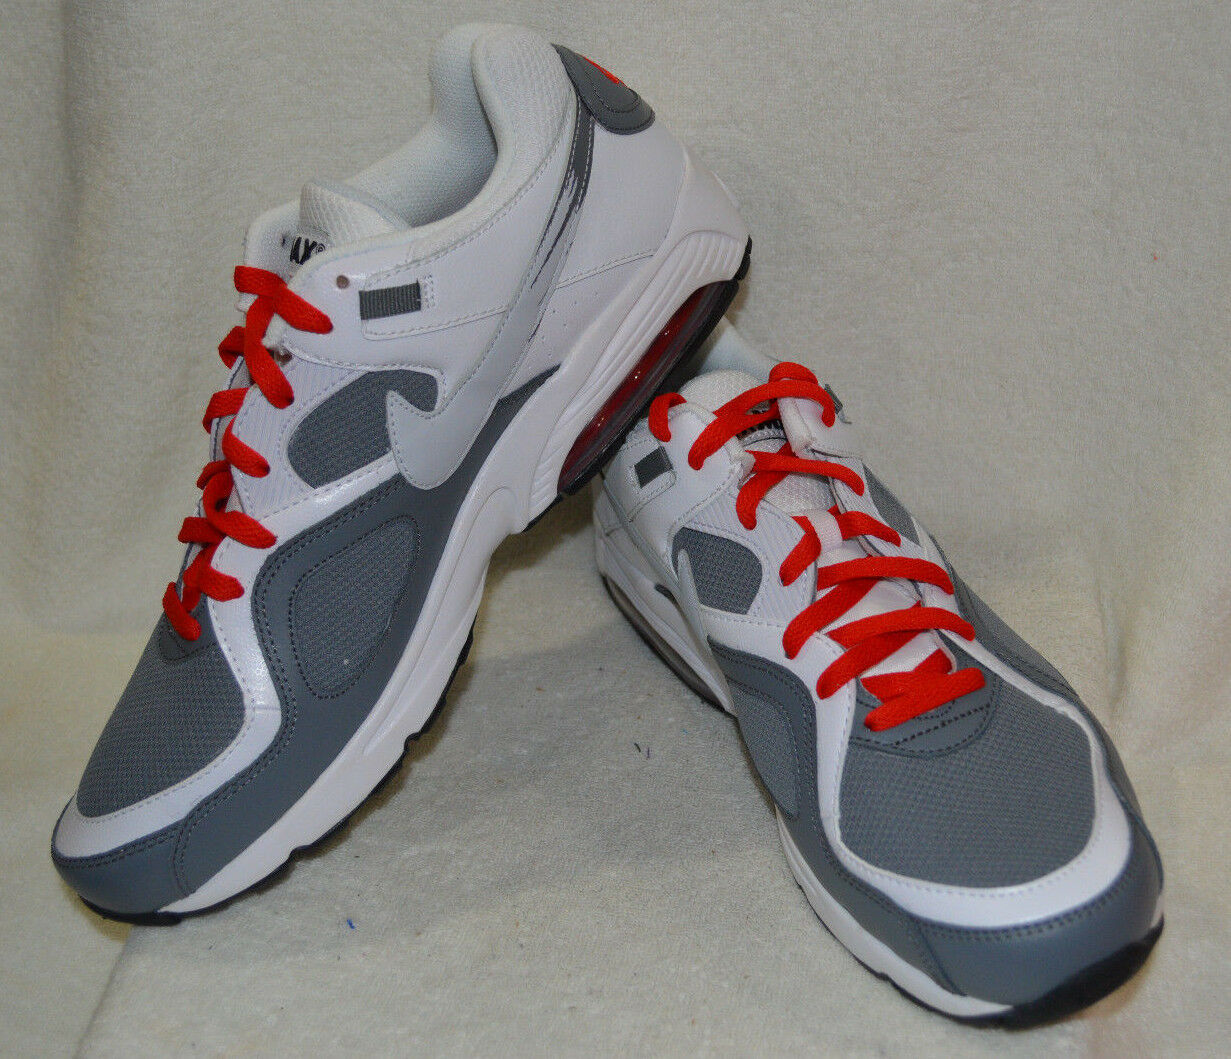 Nike Air Max Go Strong Essential Men's Running shoes - Size 9